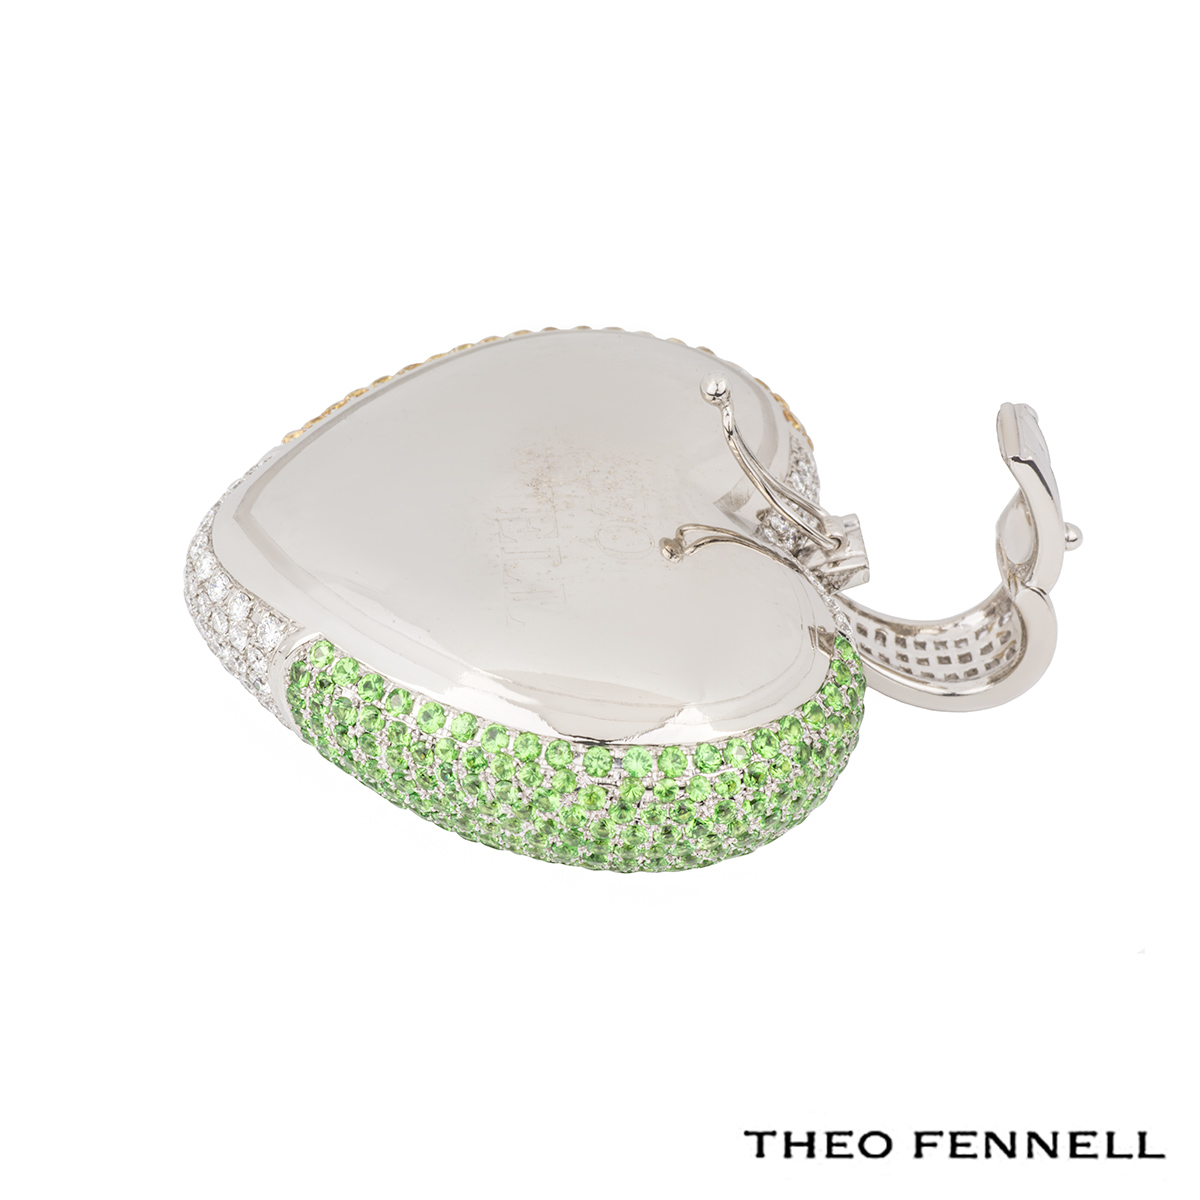 Theo Fennell White Gold Heart Pendant